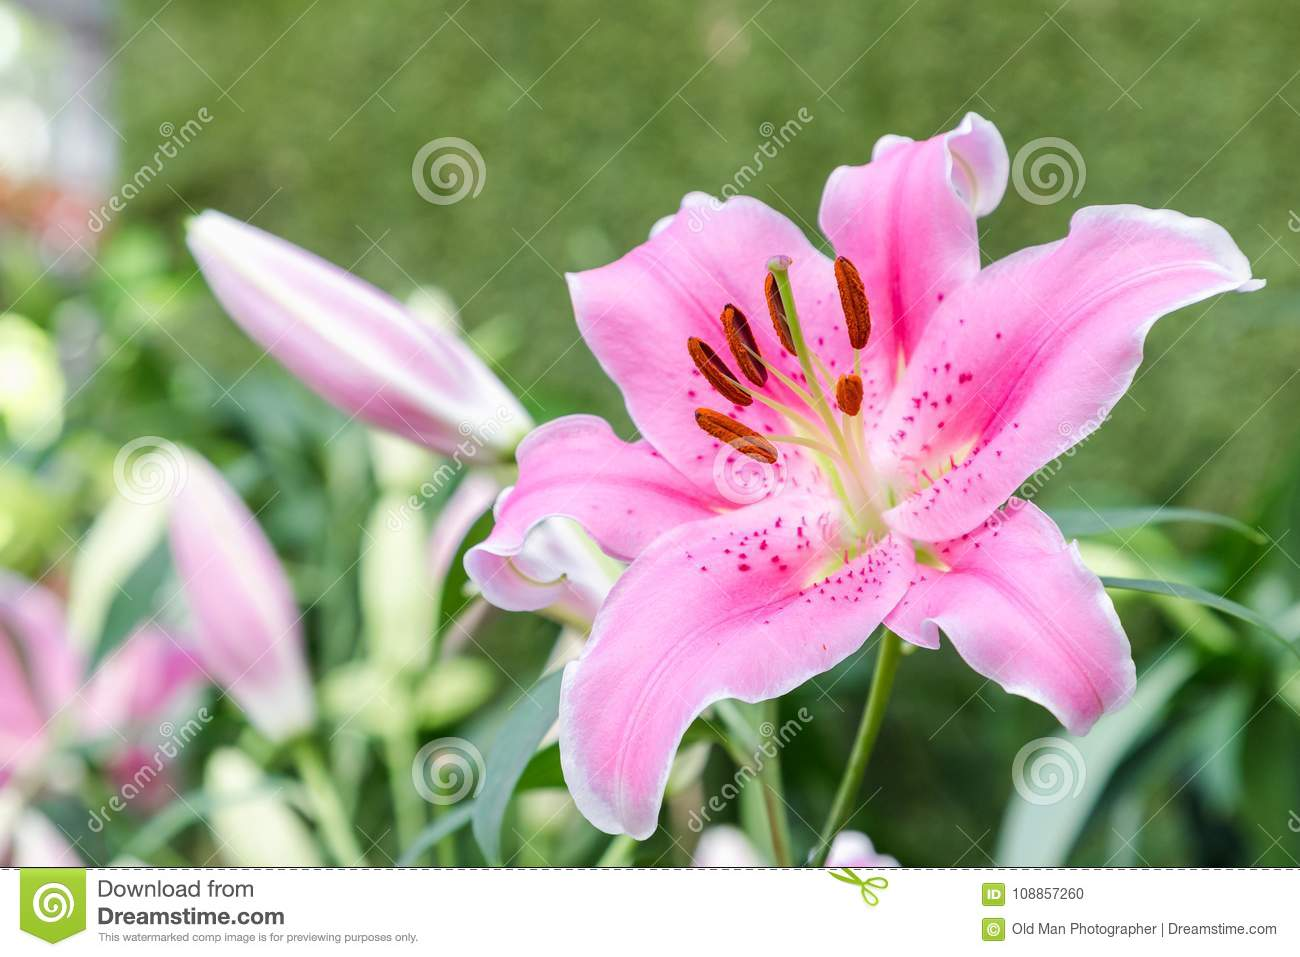 Pink lily flower beautiful lily flower and green leaf background in pink lily flower beautiful lily flower and green leaf background in lily flower garden at izmirmasajfo